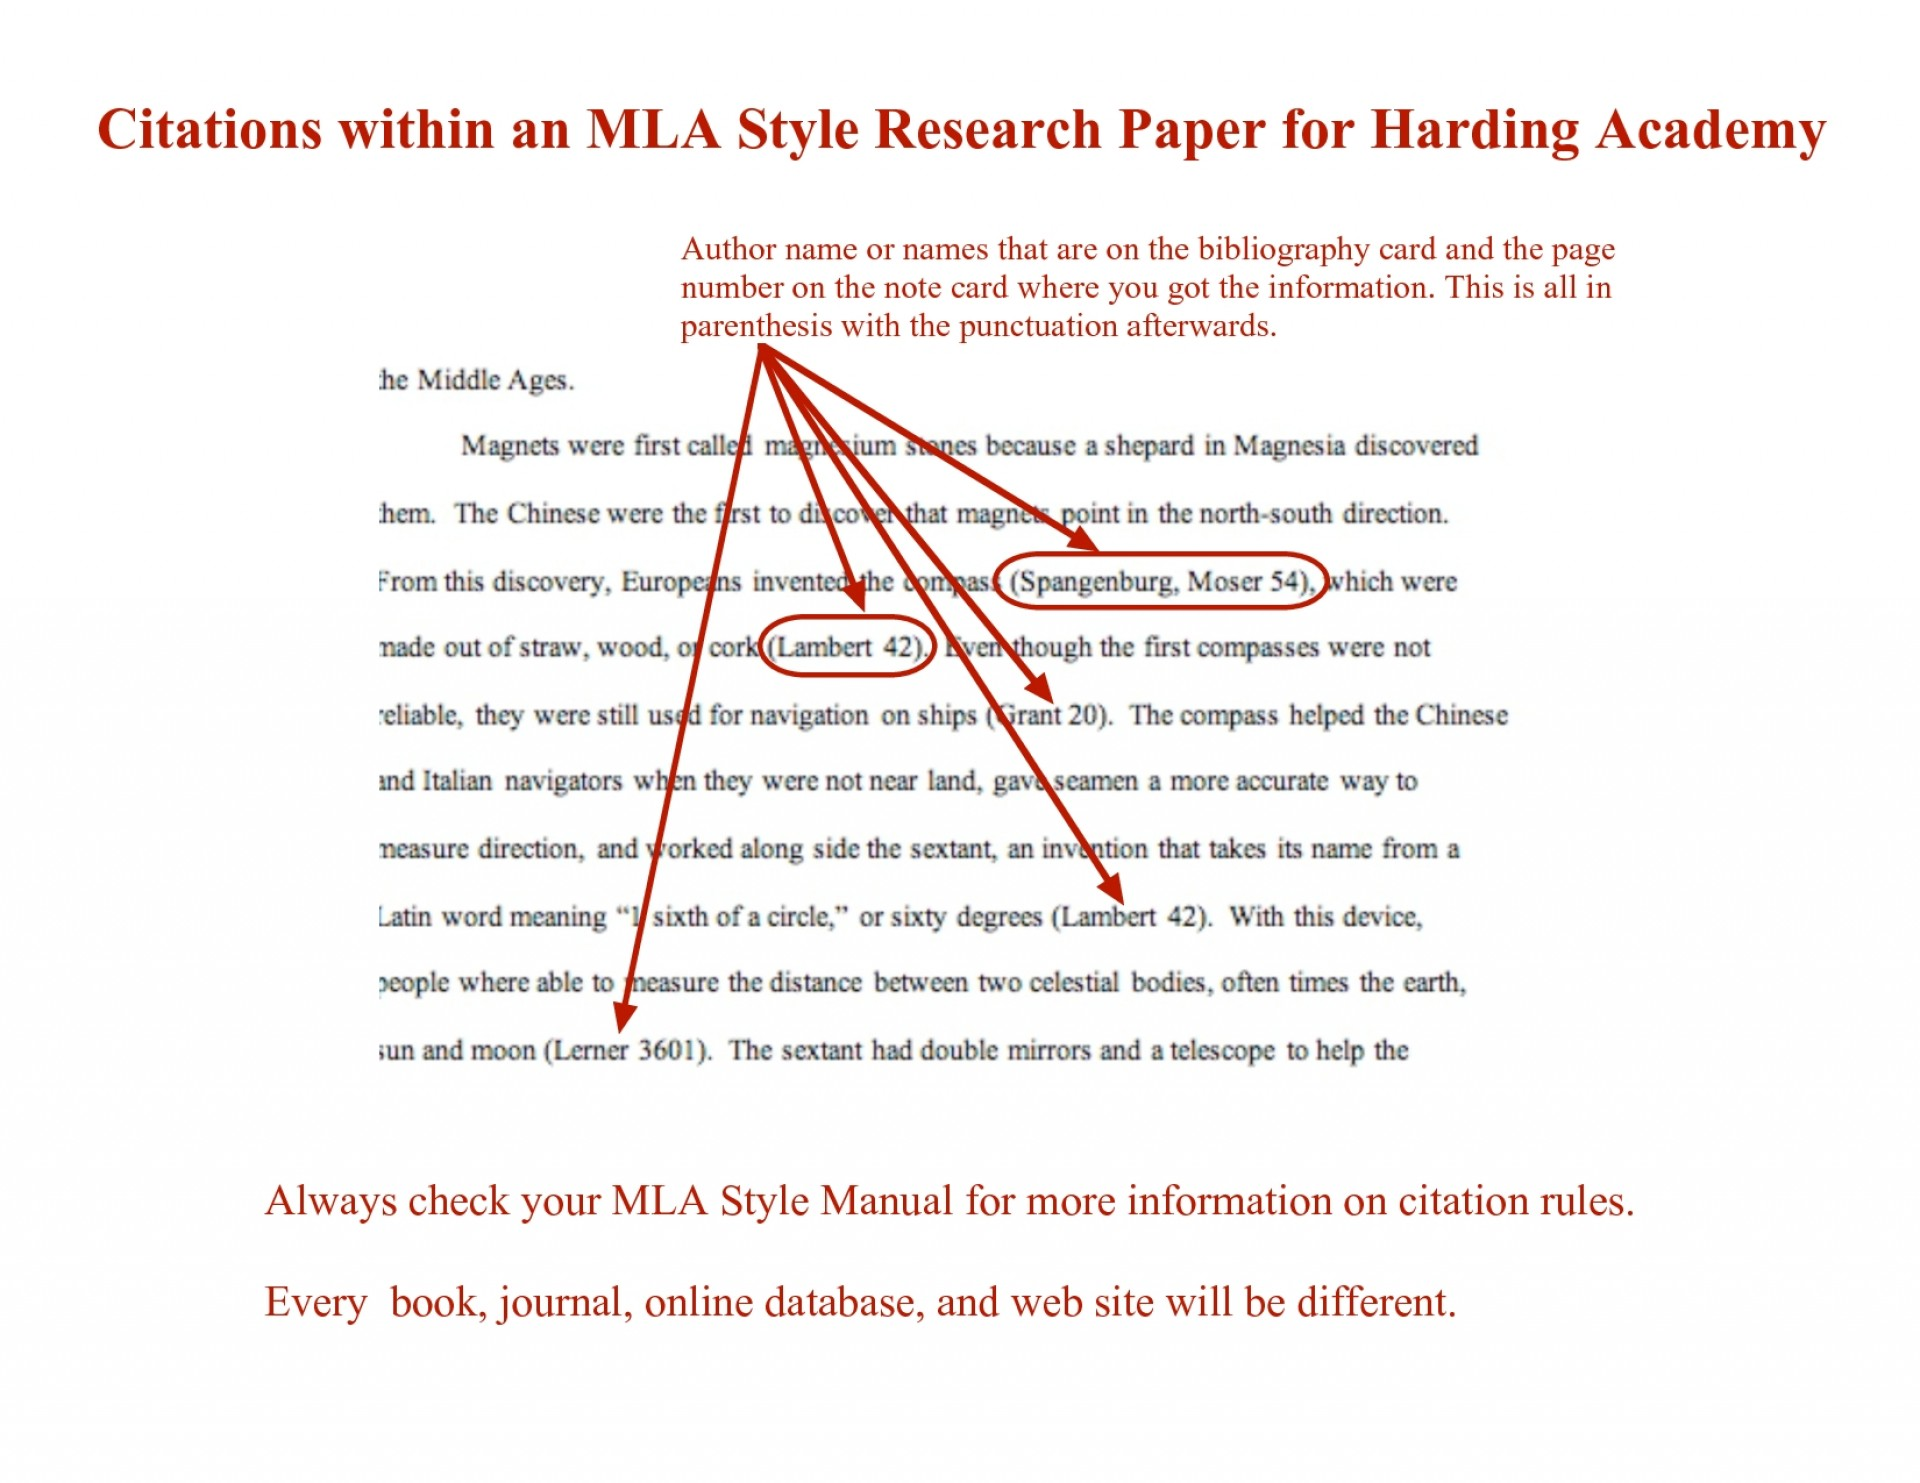 008 Essay Example Citing Sources In An How To Cite Citation Mla Twenty Hueandi Co Collection Of Solutions Quote From Website Stunning Research Pape Examples Essays Phenomenal Argumentative Expository College 1920